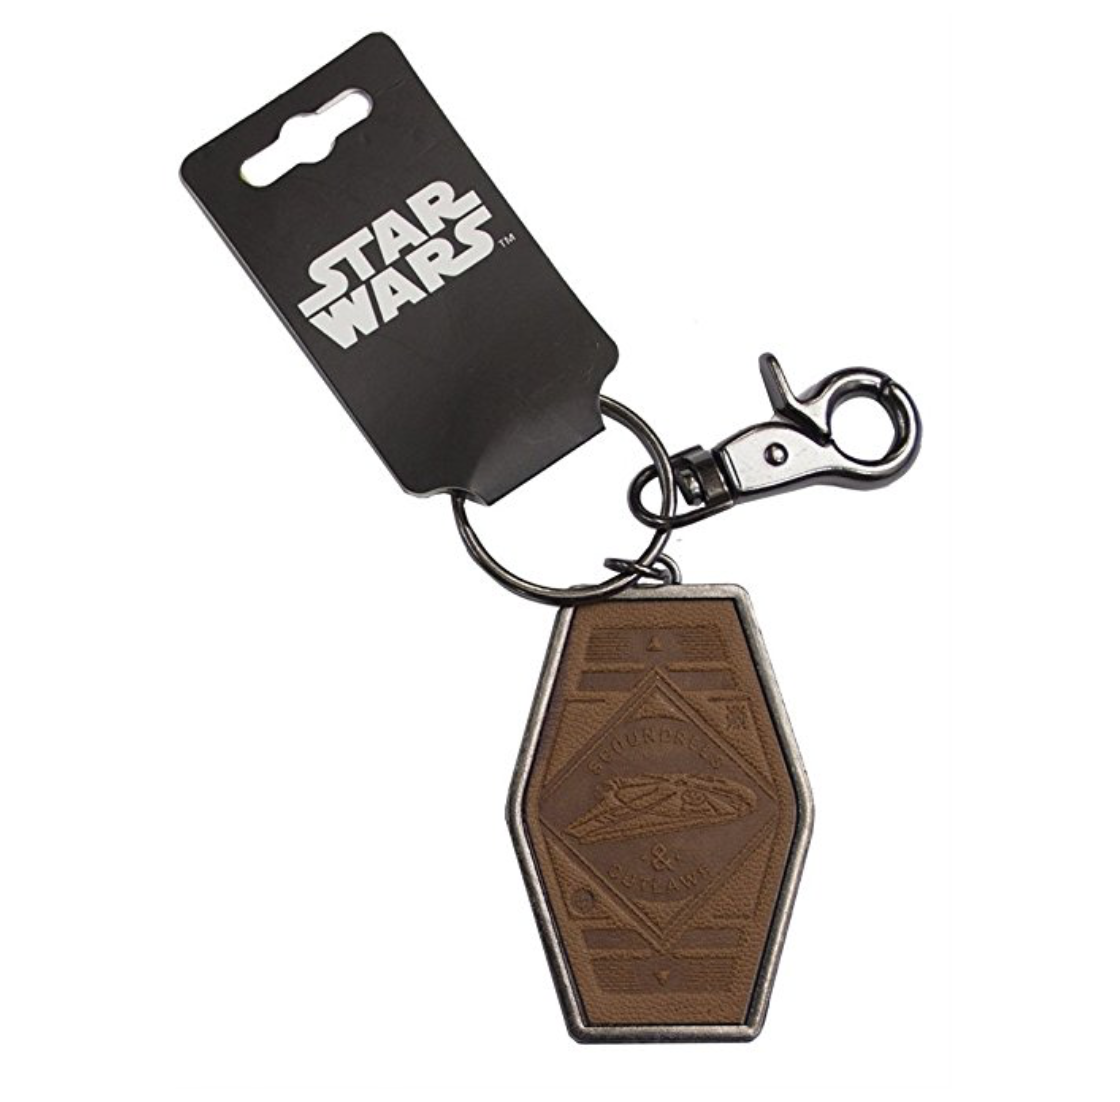 Solo: ASWS Scoundrels and Outlaws Keychain 1